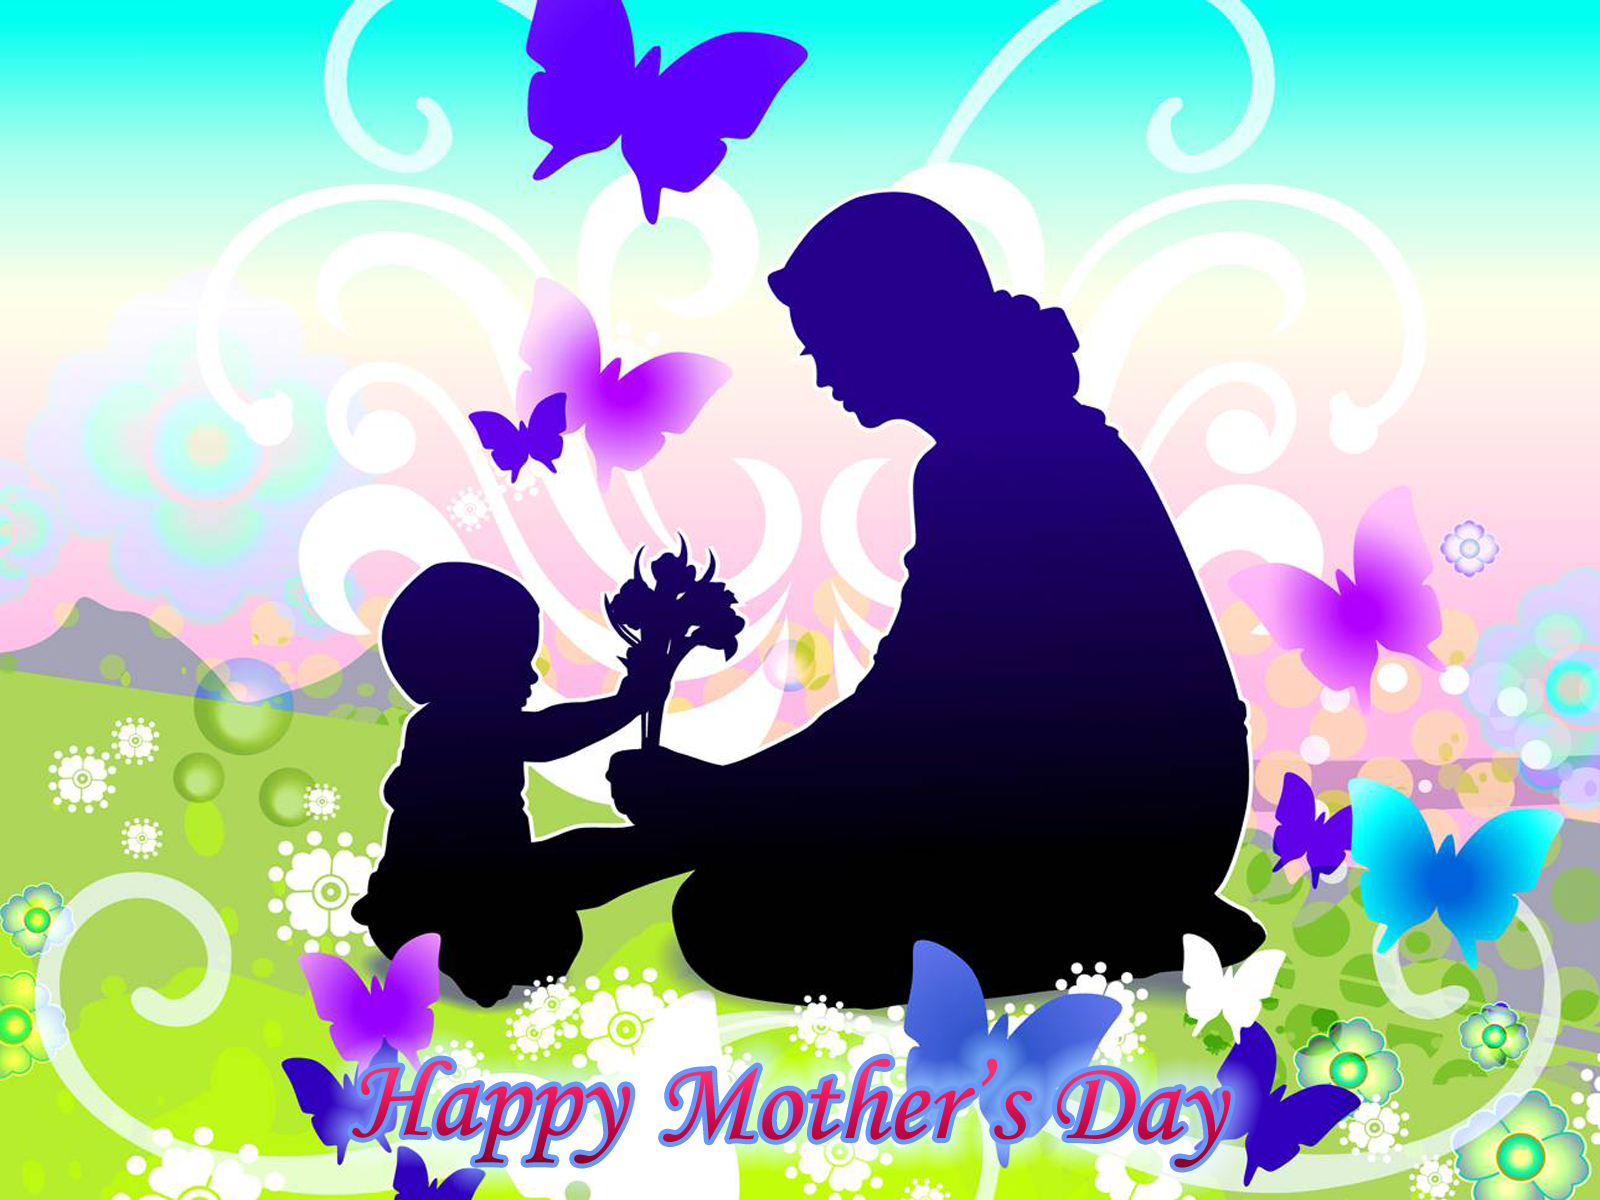 Amazing Mother's Day Pictures & Backgrounds